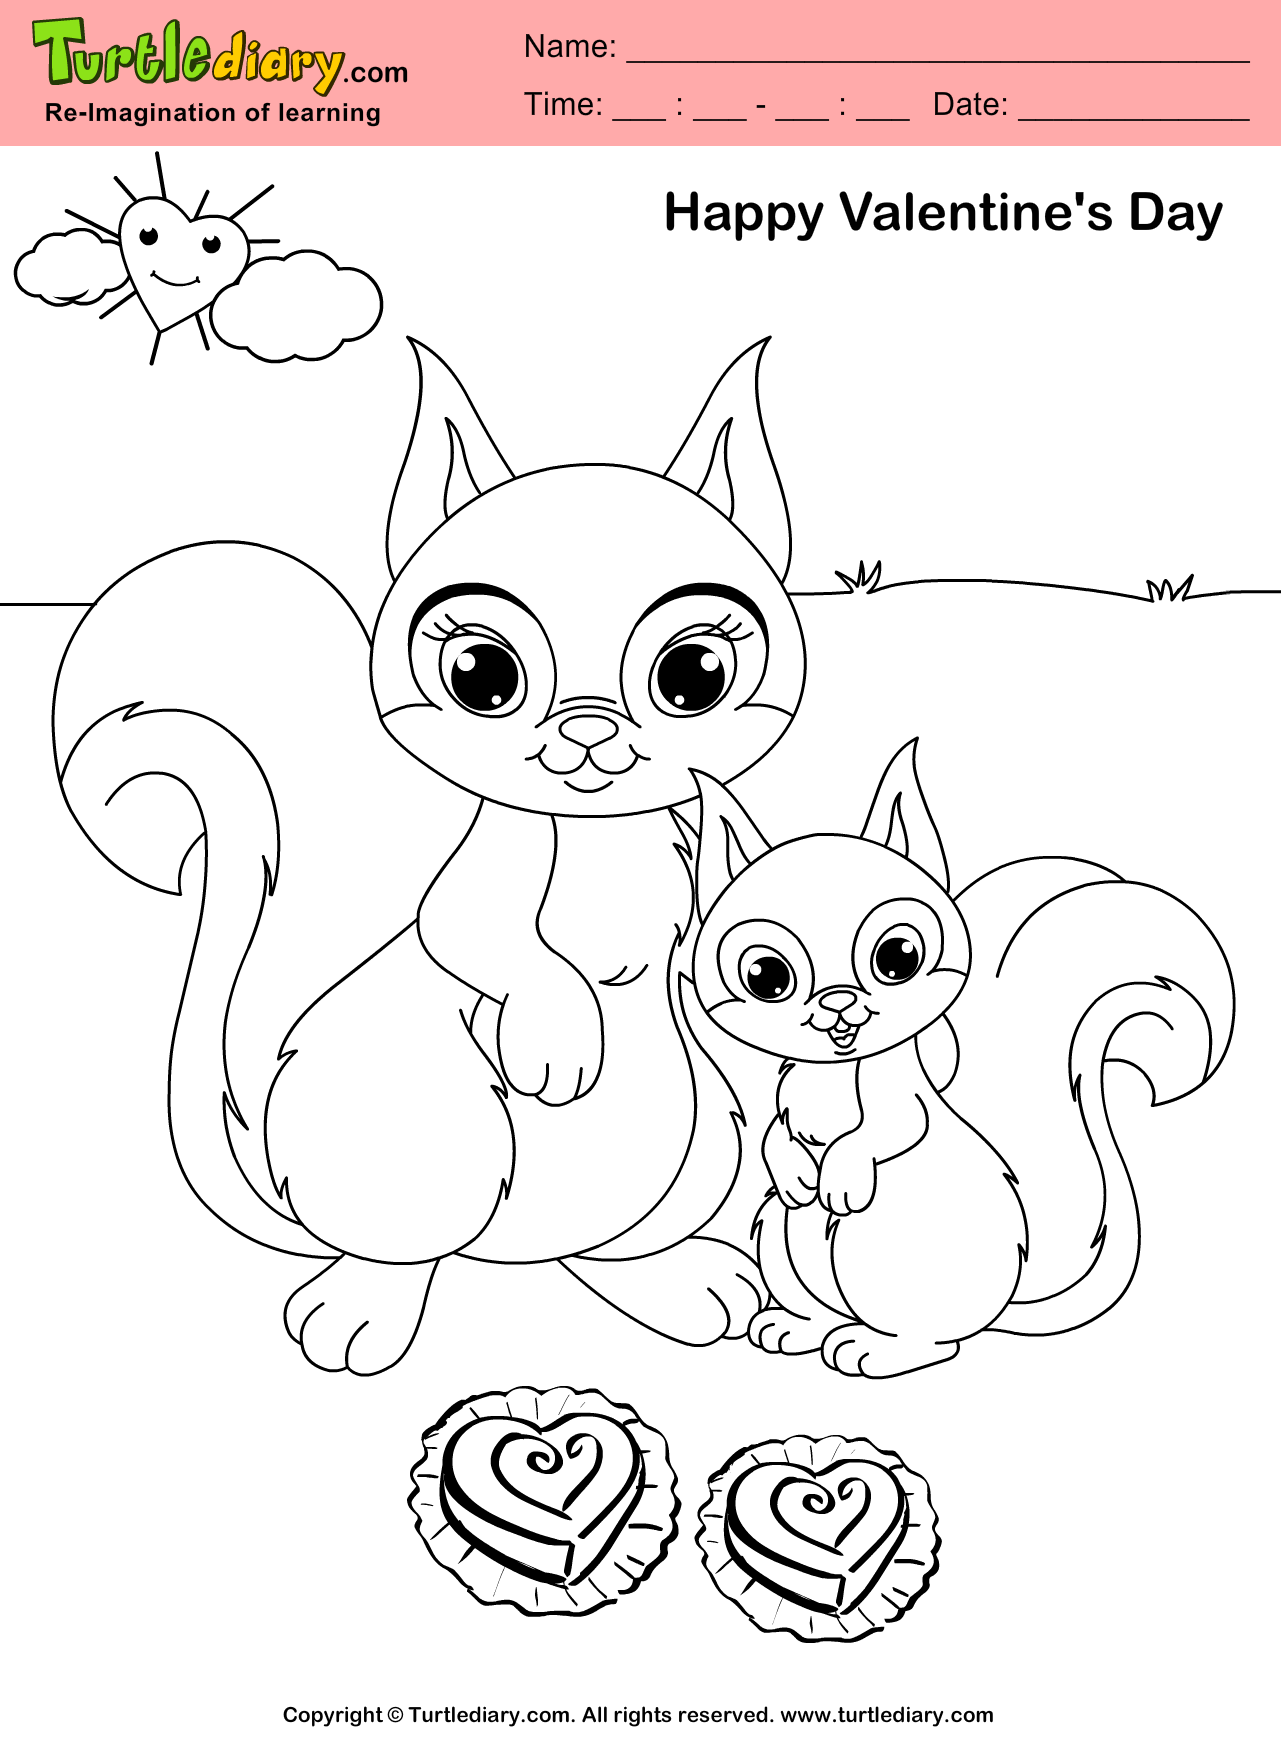 Squirrel Valentine Day Coloring Page